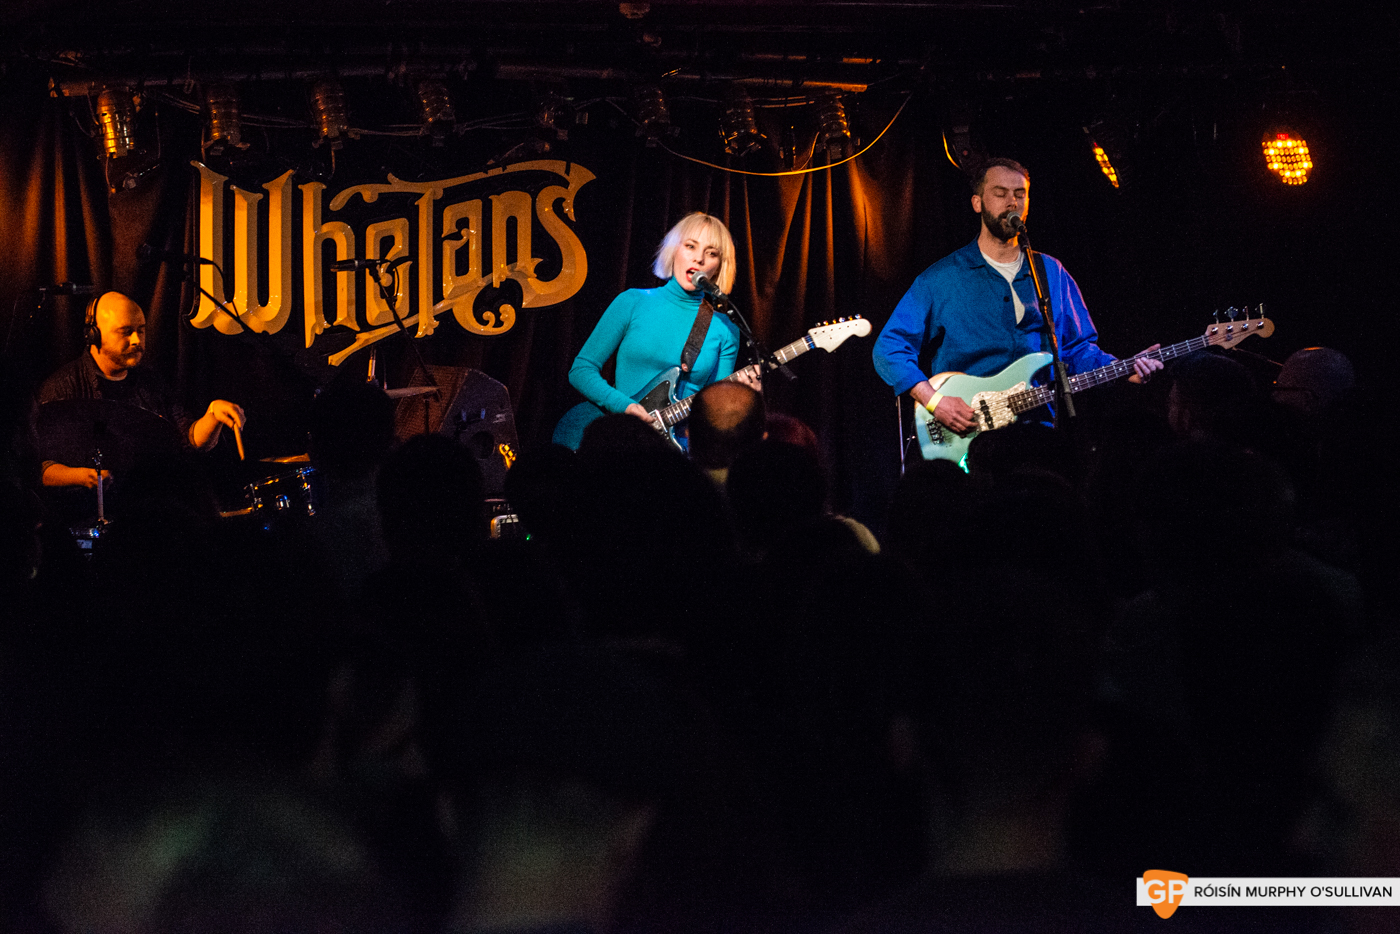 Olympia in Whelans by Roisin Murphy O'Sullivan (16 of 18)